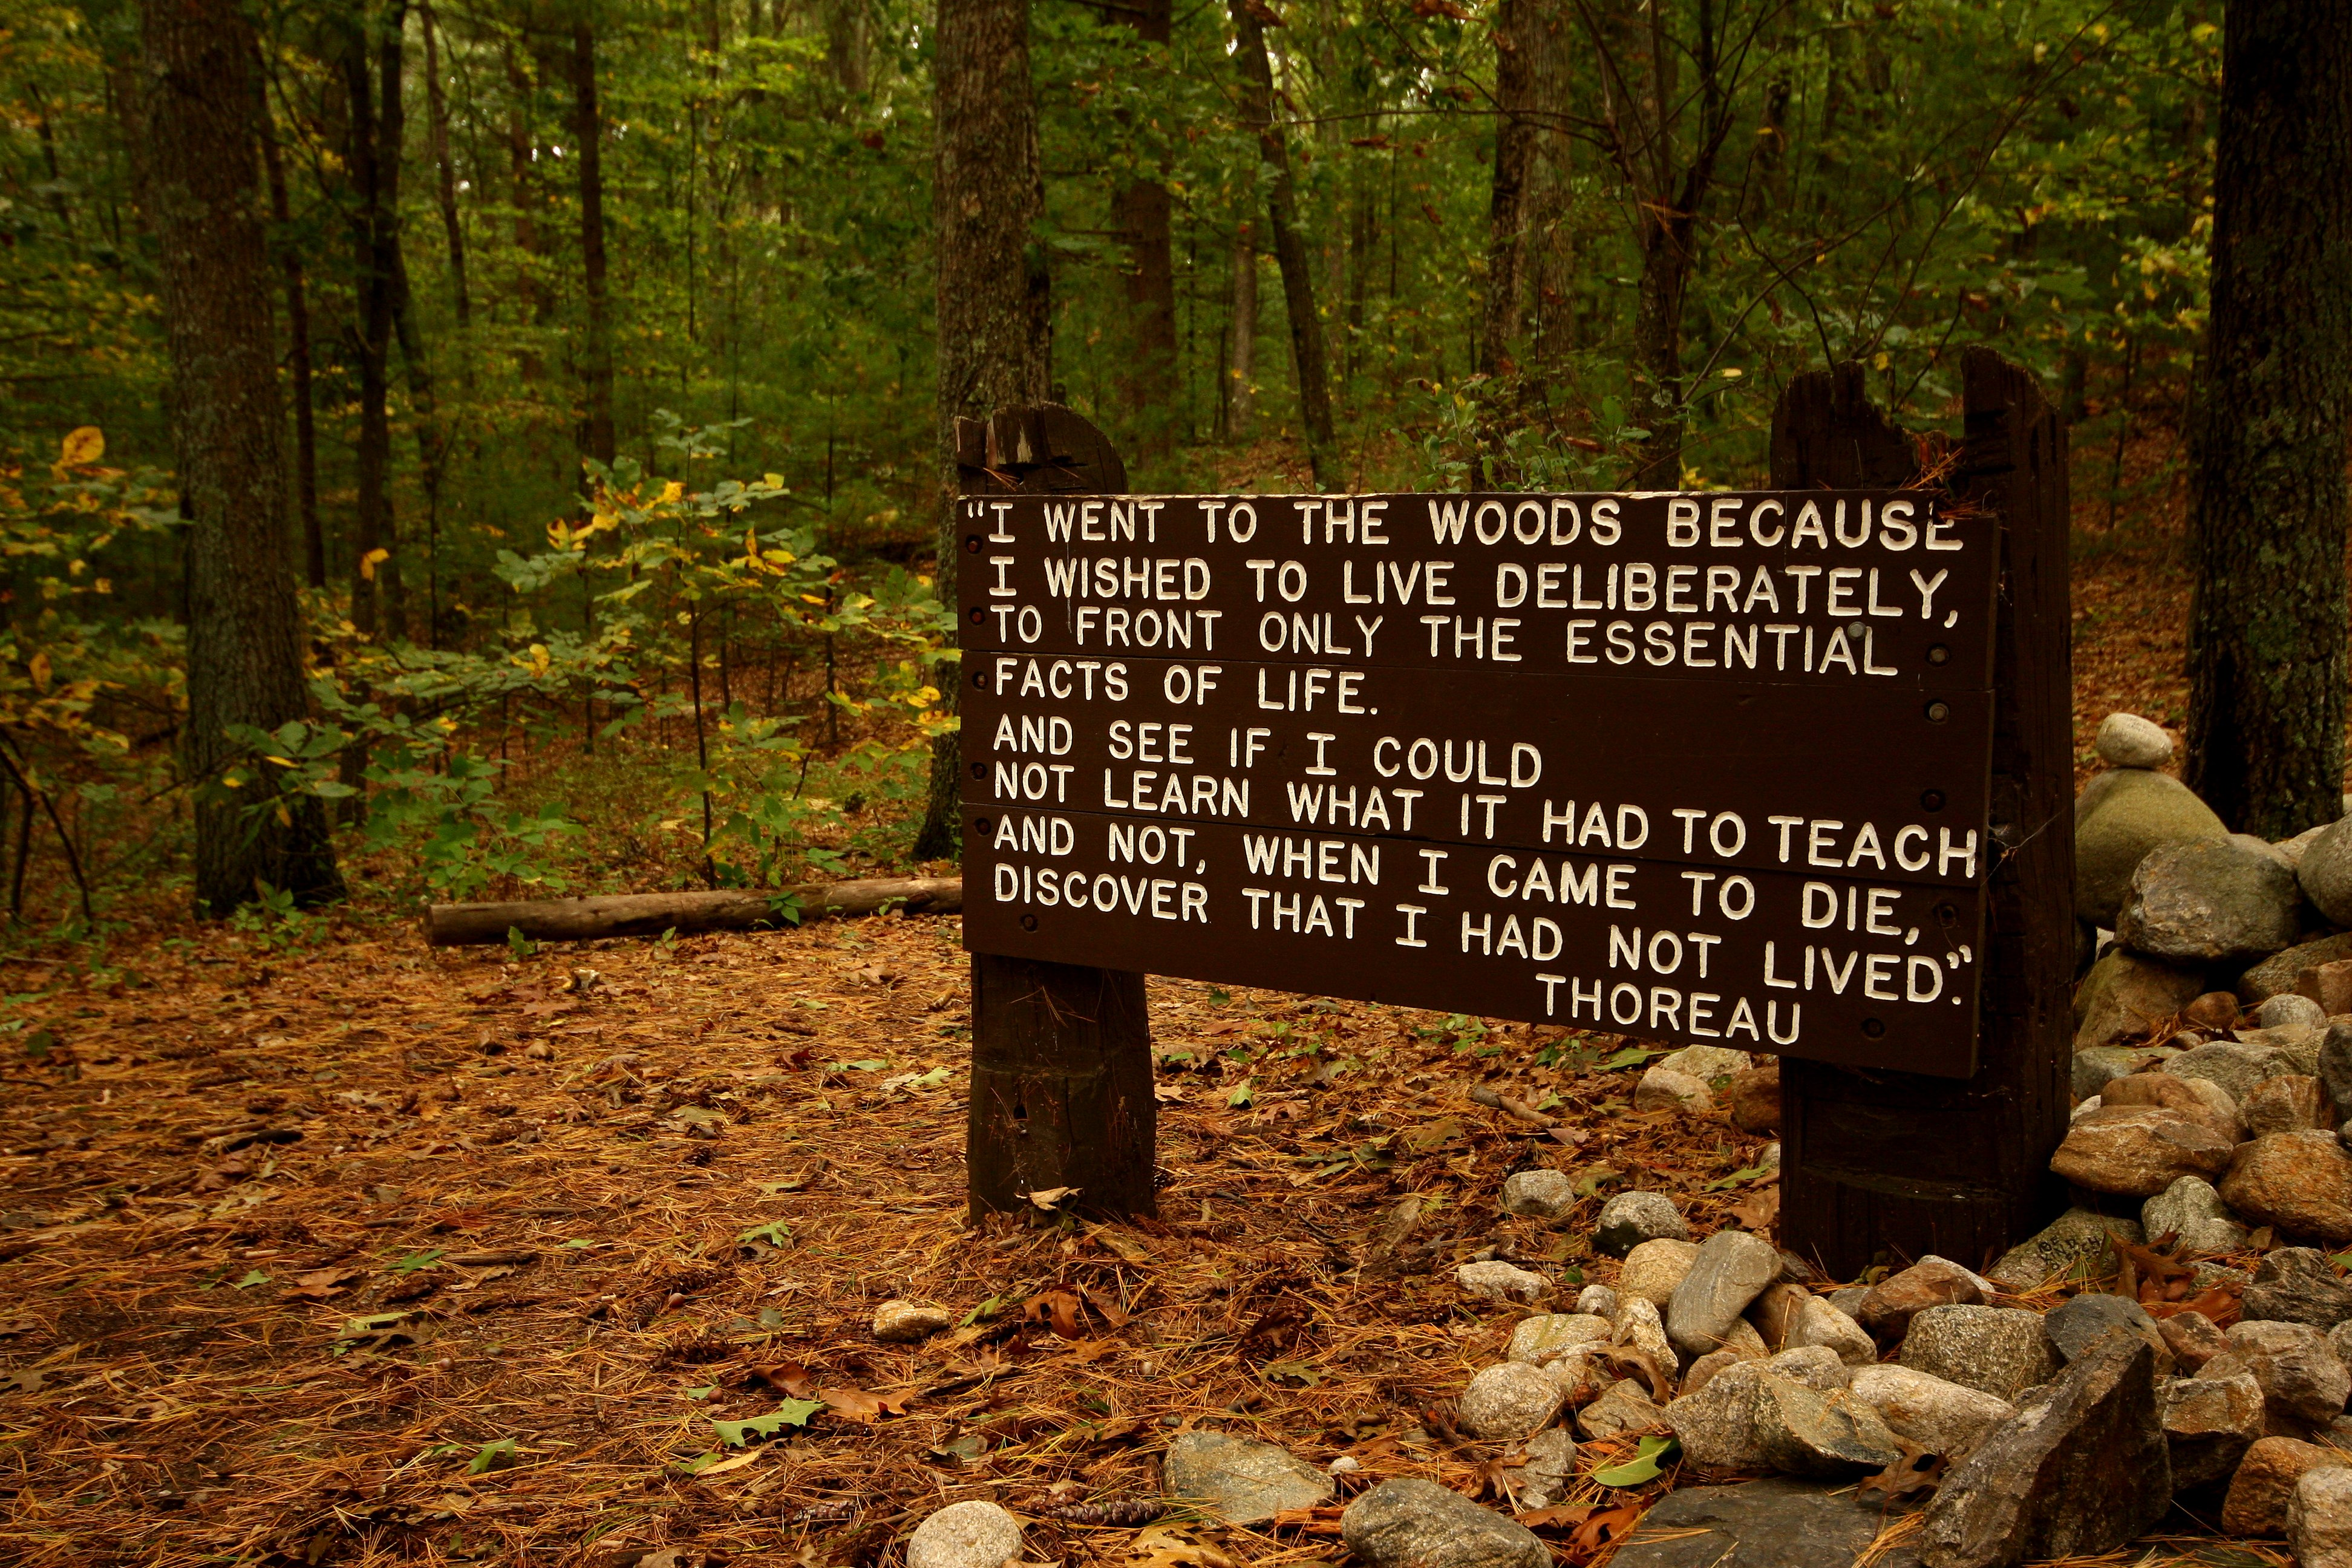 On Walden Pond, a place whose sanctity is untrammeled by our furious modern noise.